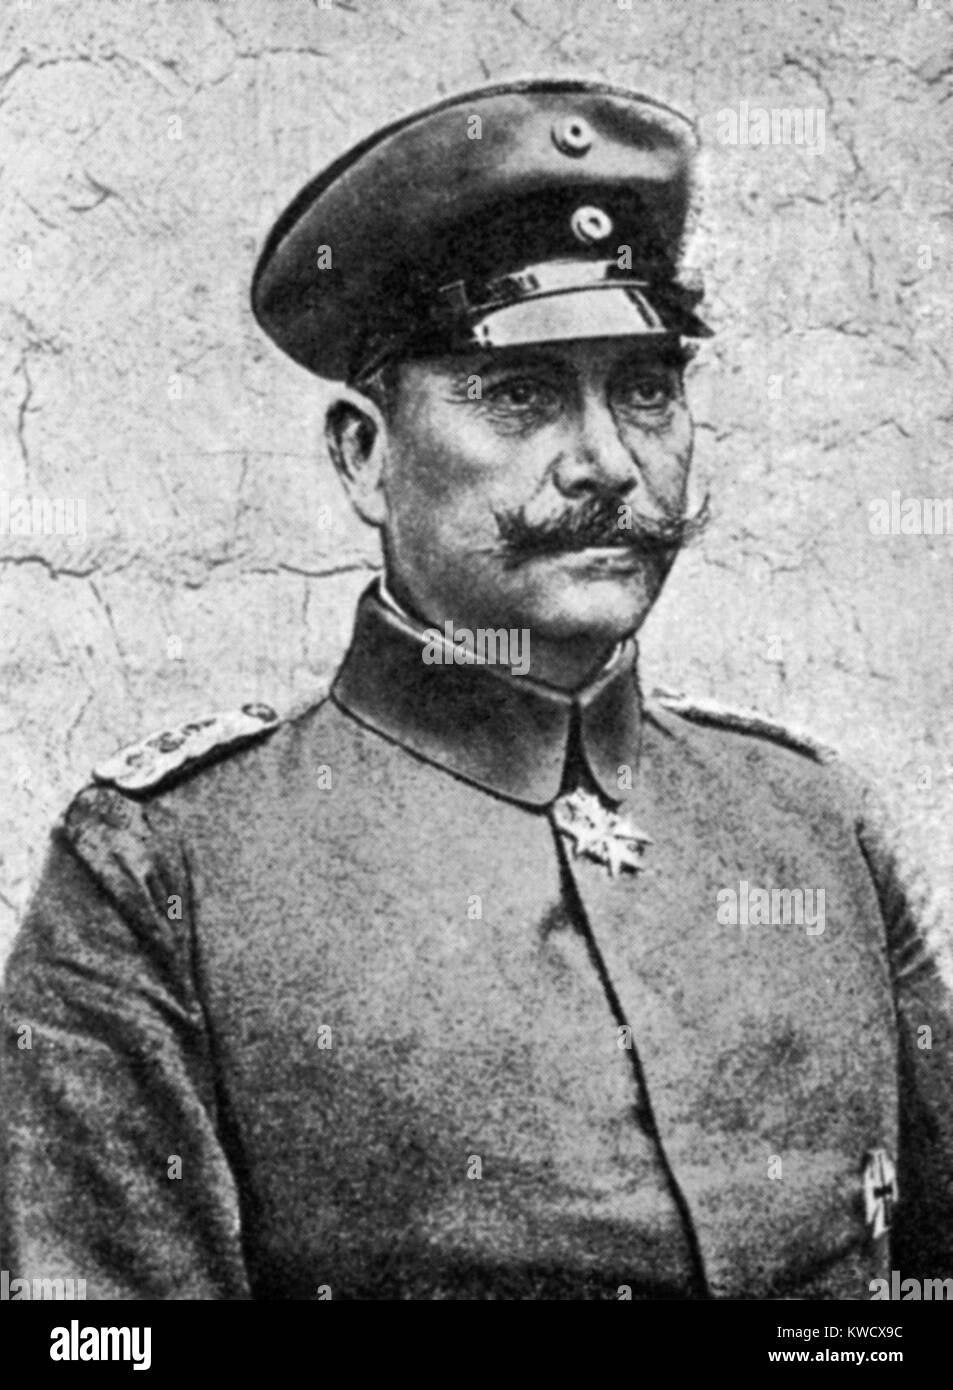 World War 1. German artillery genius, Oberst Bruchmueller, developed systematic firing of artillery, which contributed - Stock Image